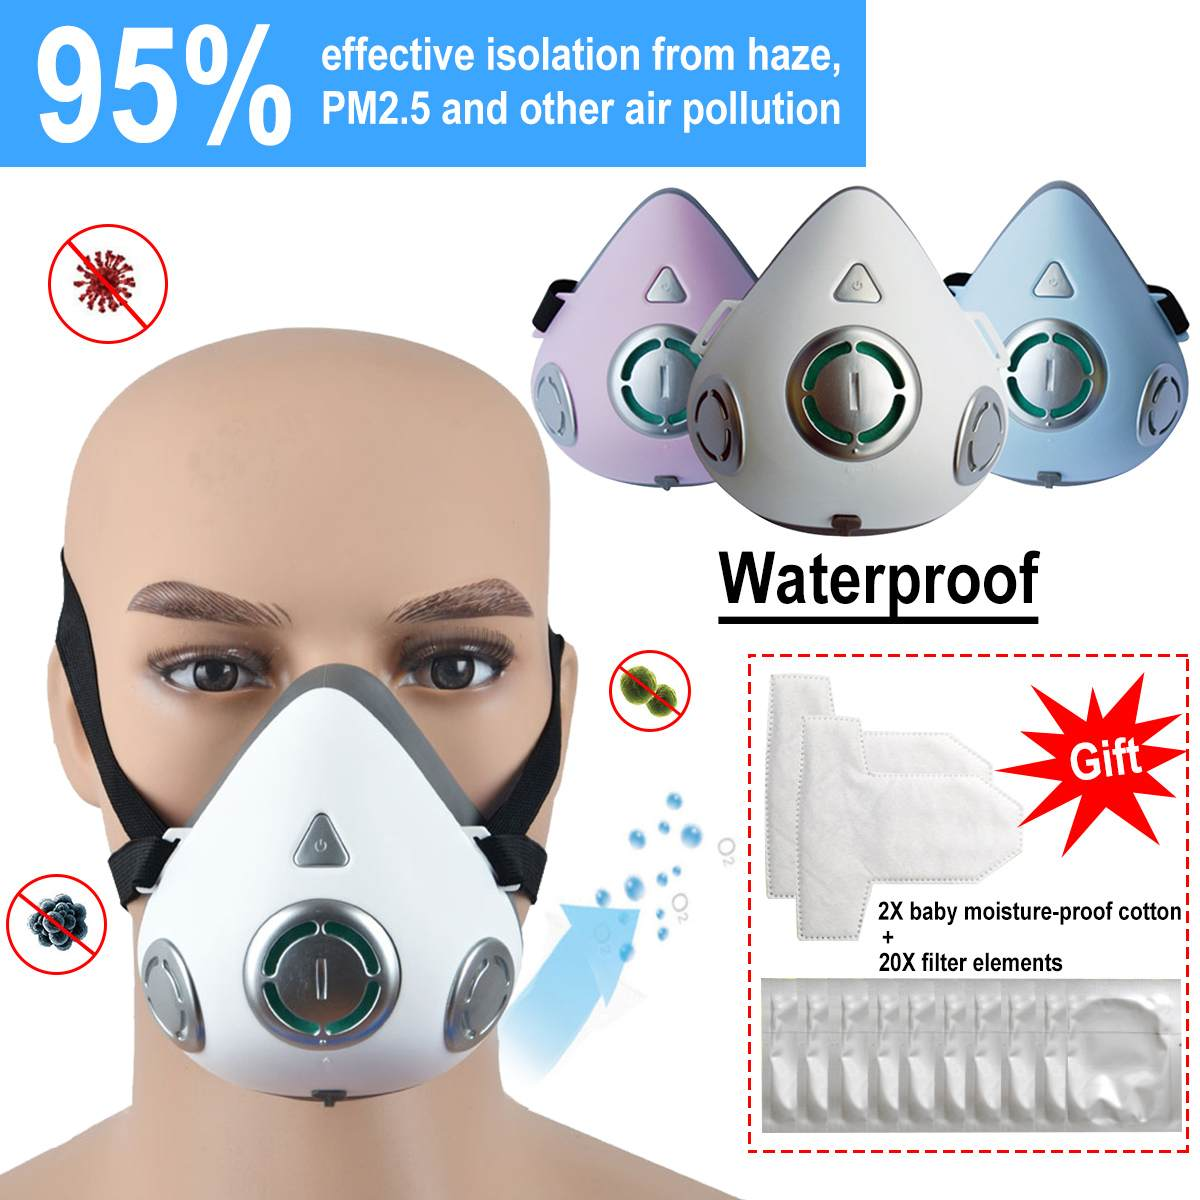 Waterproof Electric Face Mask Reusable Anti Dust PM2.5 Respirator Mask Adjustable Strap Masks With 20pcs Filter Pad